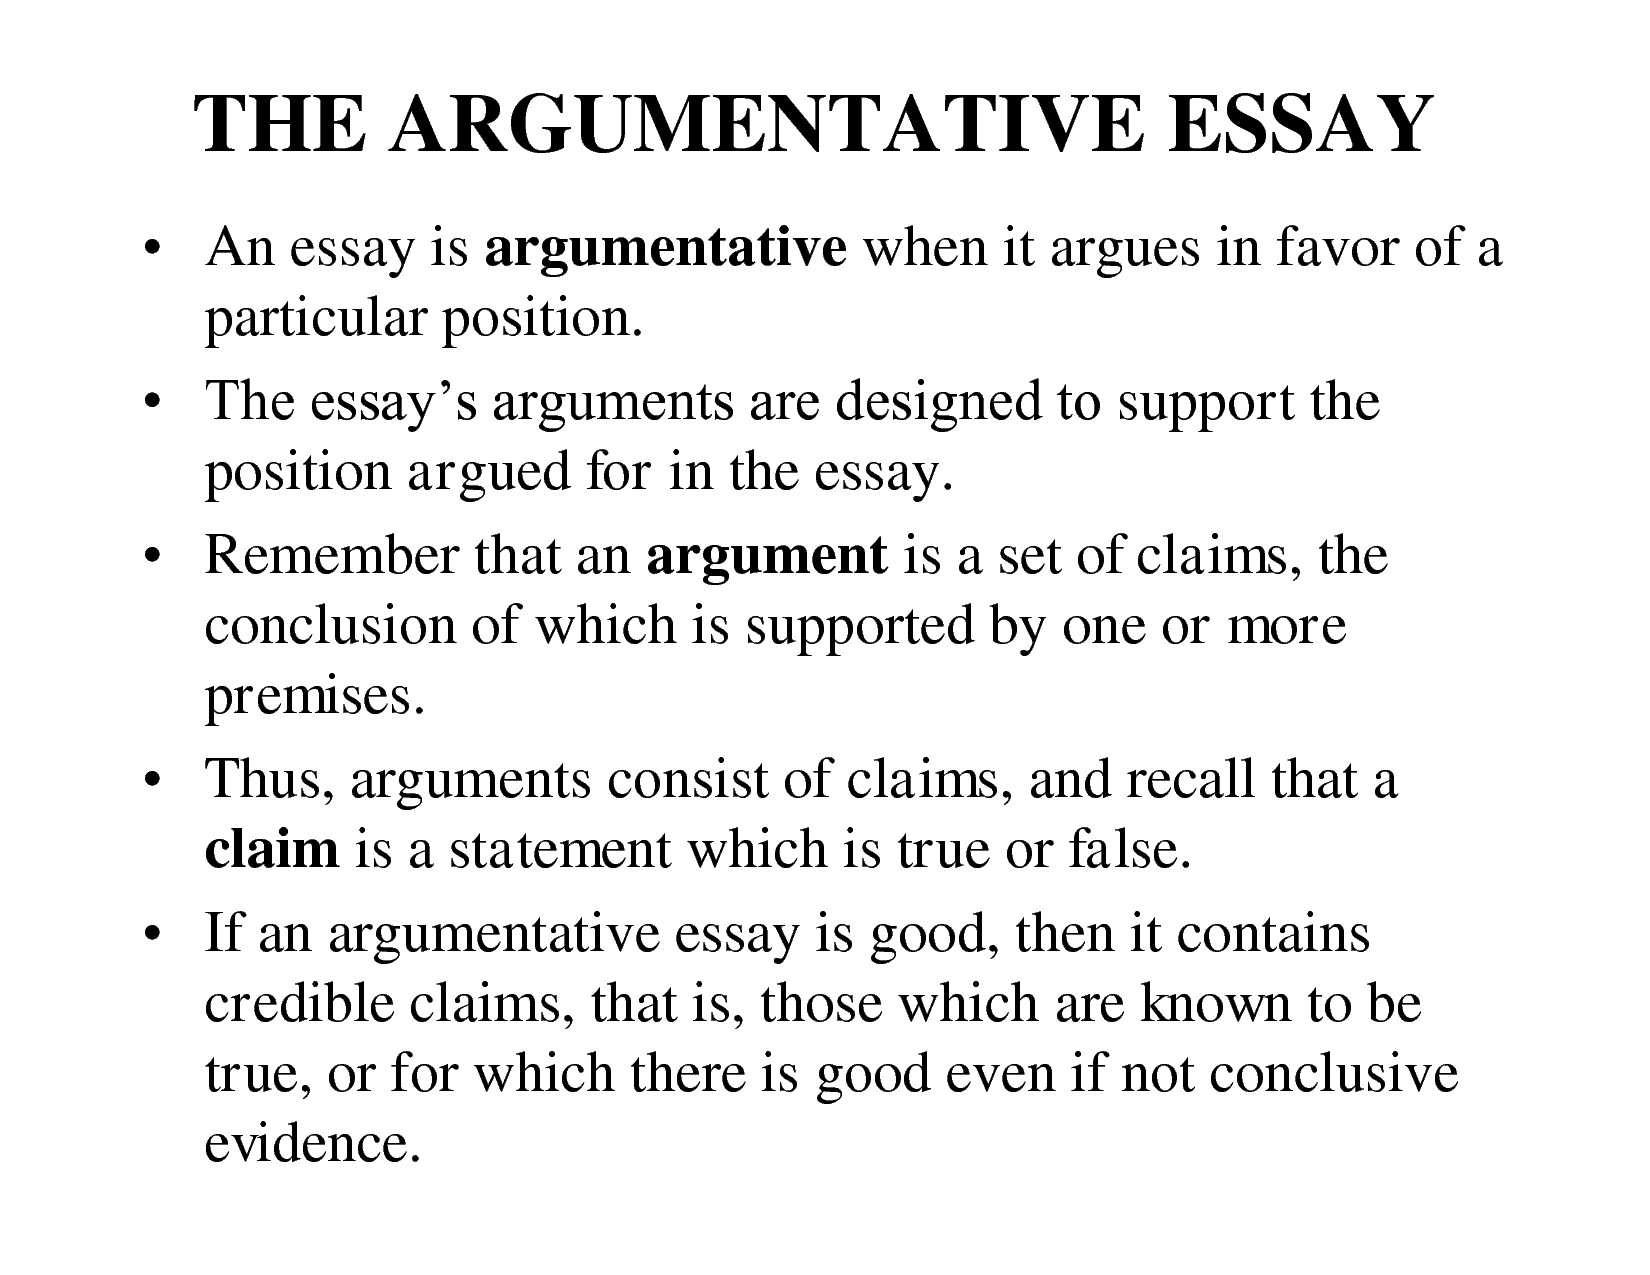 001 Essay Conclusion Sample Example Argumentative World Of How To Write Good Concluding Paragraph For Persuasive Gse Bookbinder Co Rega Examples Argument Stupendous College Admission Full